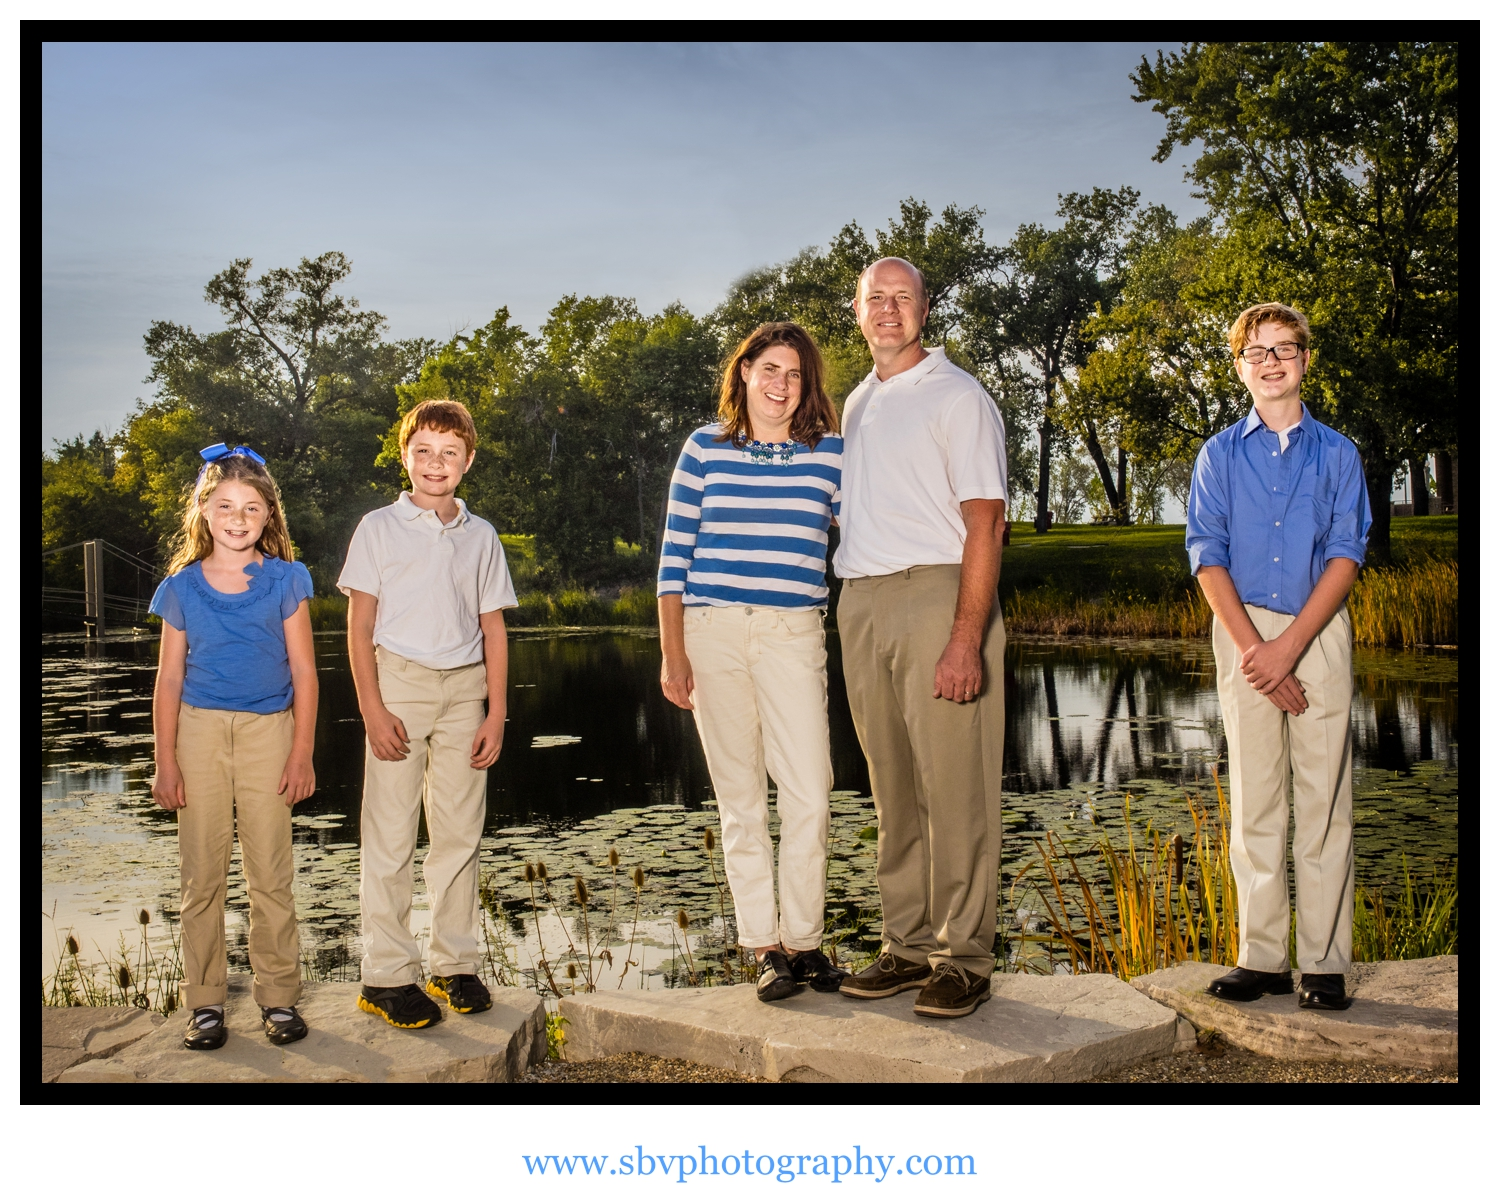 A family photo overlooking the lagoon at Marquette Park Pavilion.